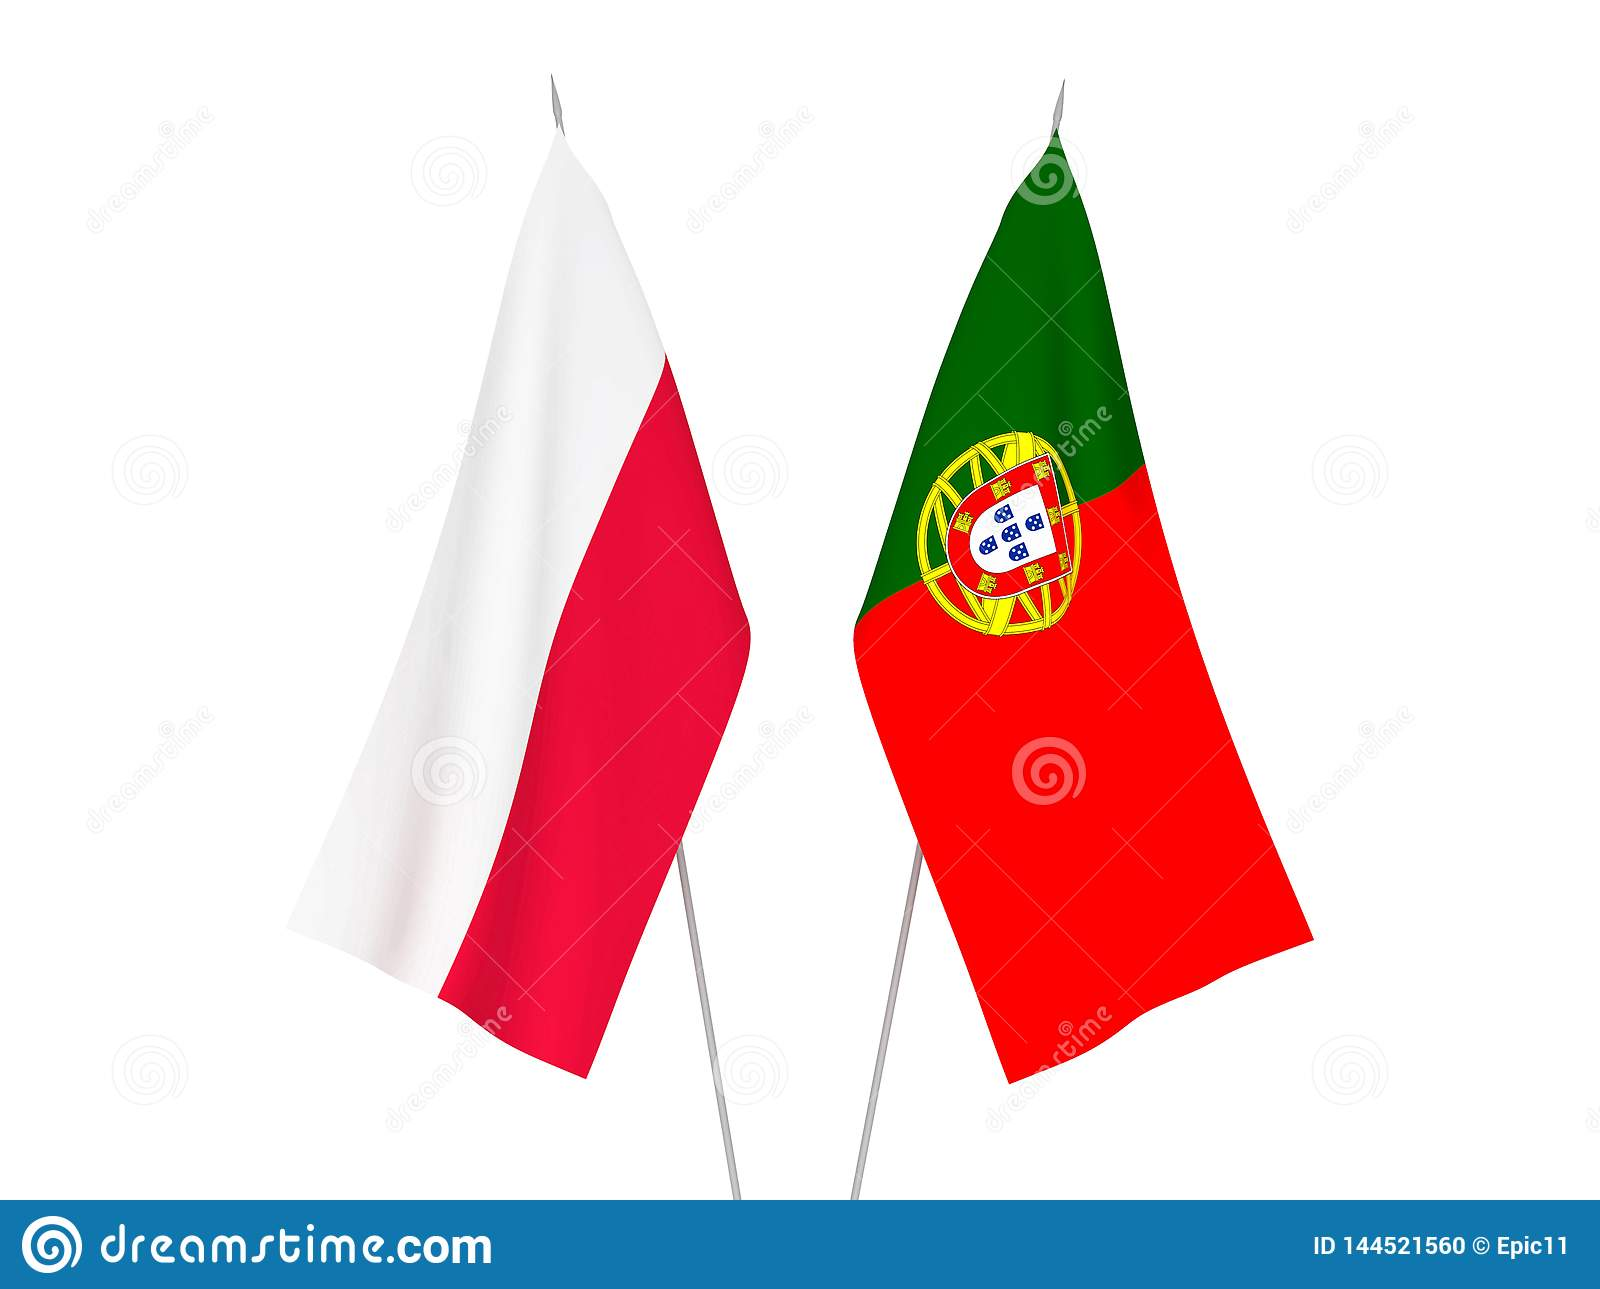 Portugal and Poland flags